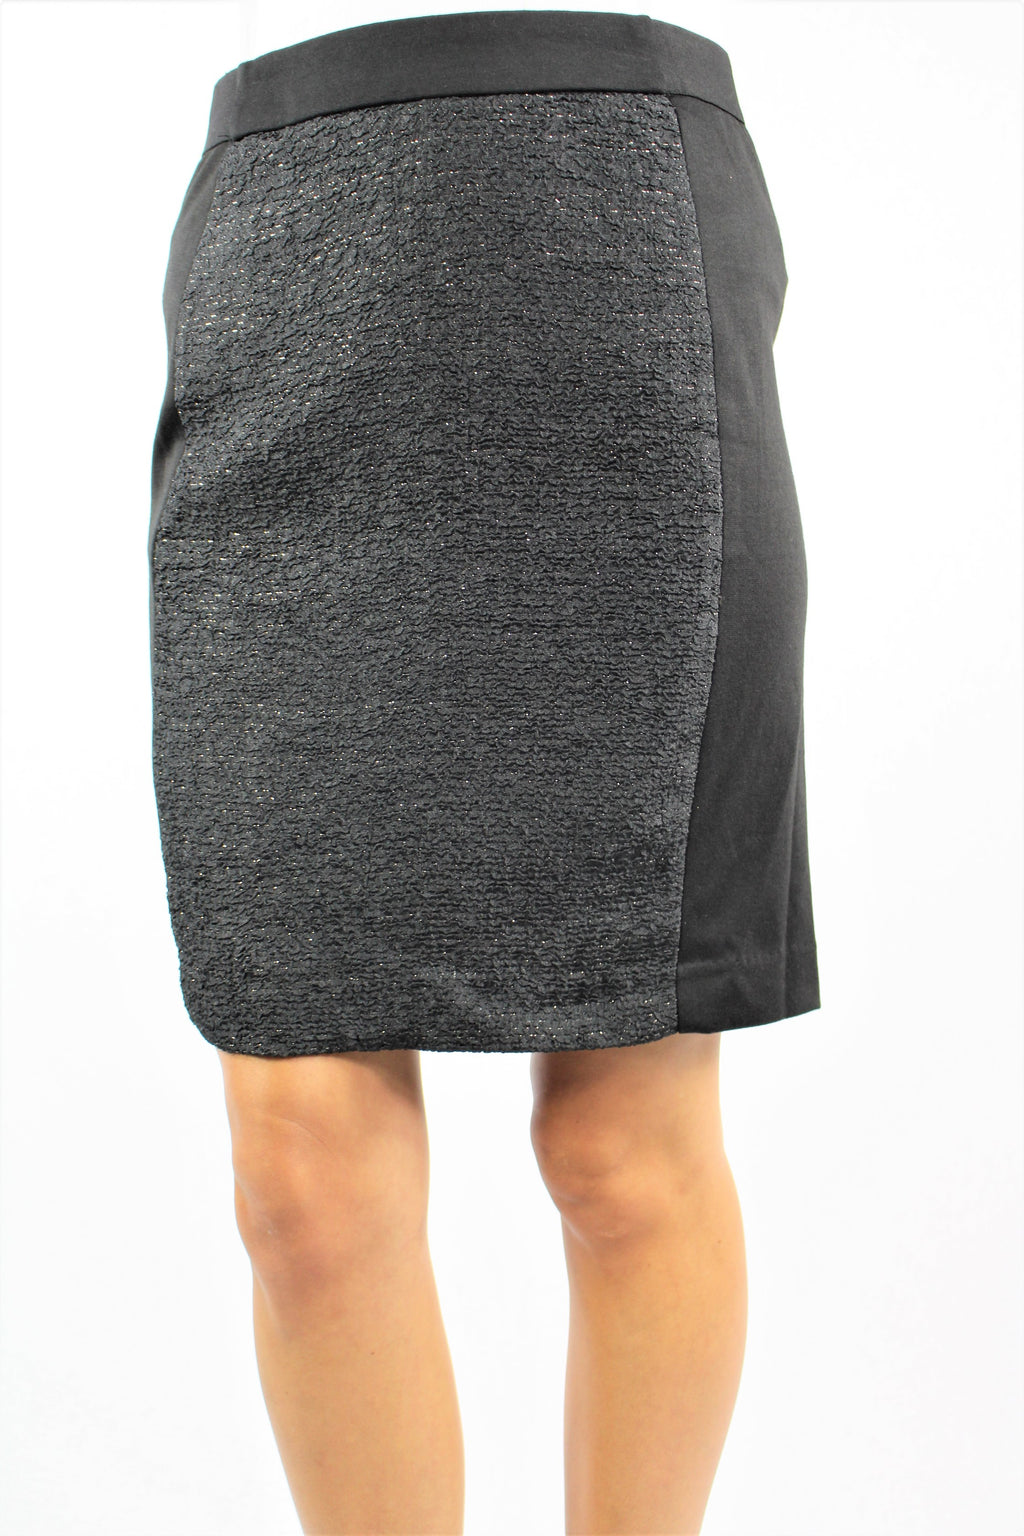 Women's Stylish Pencil Skirt